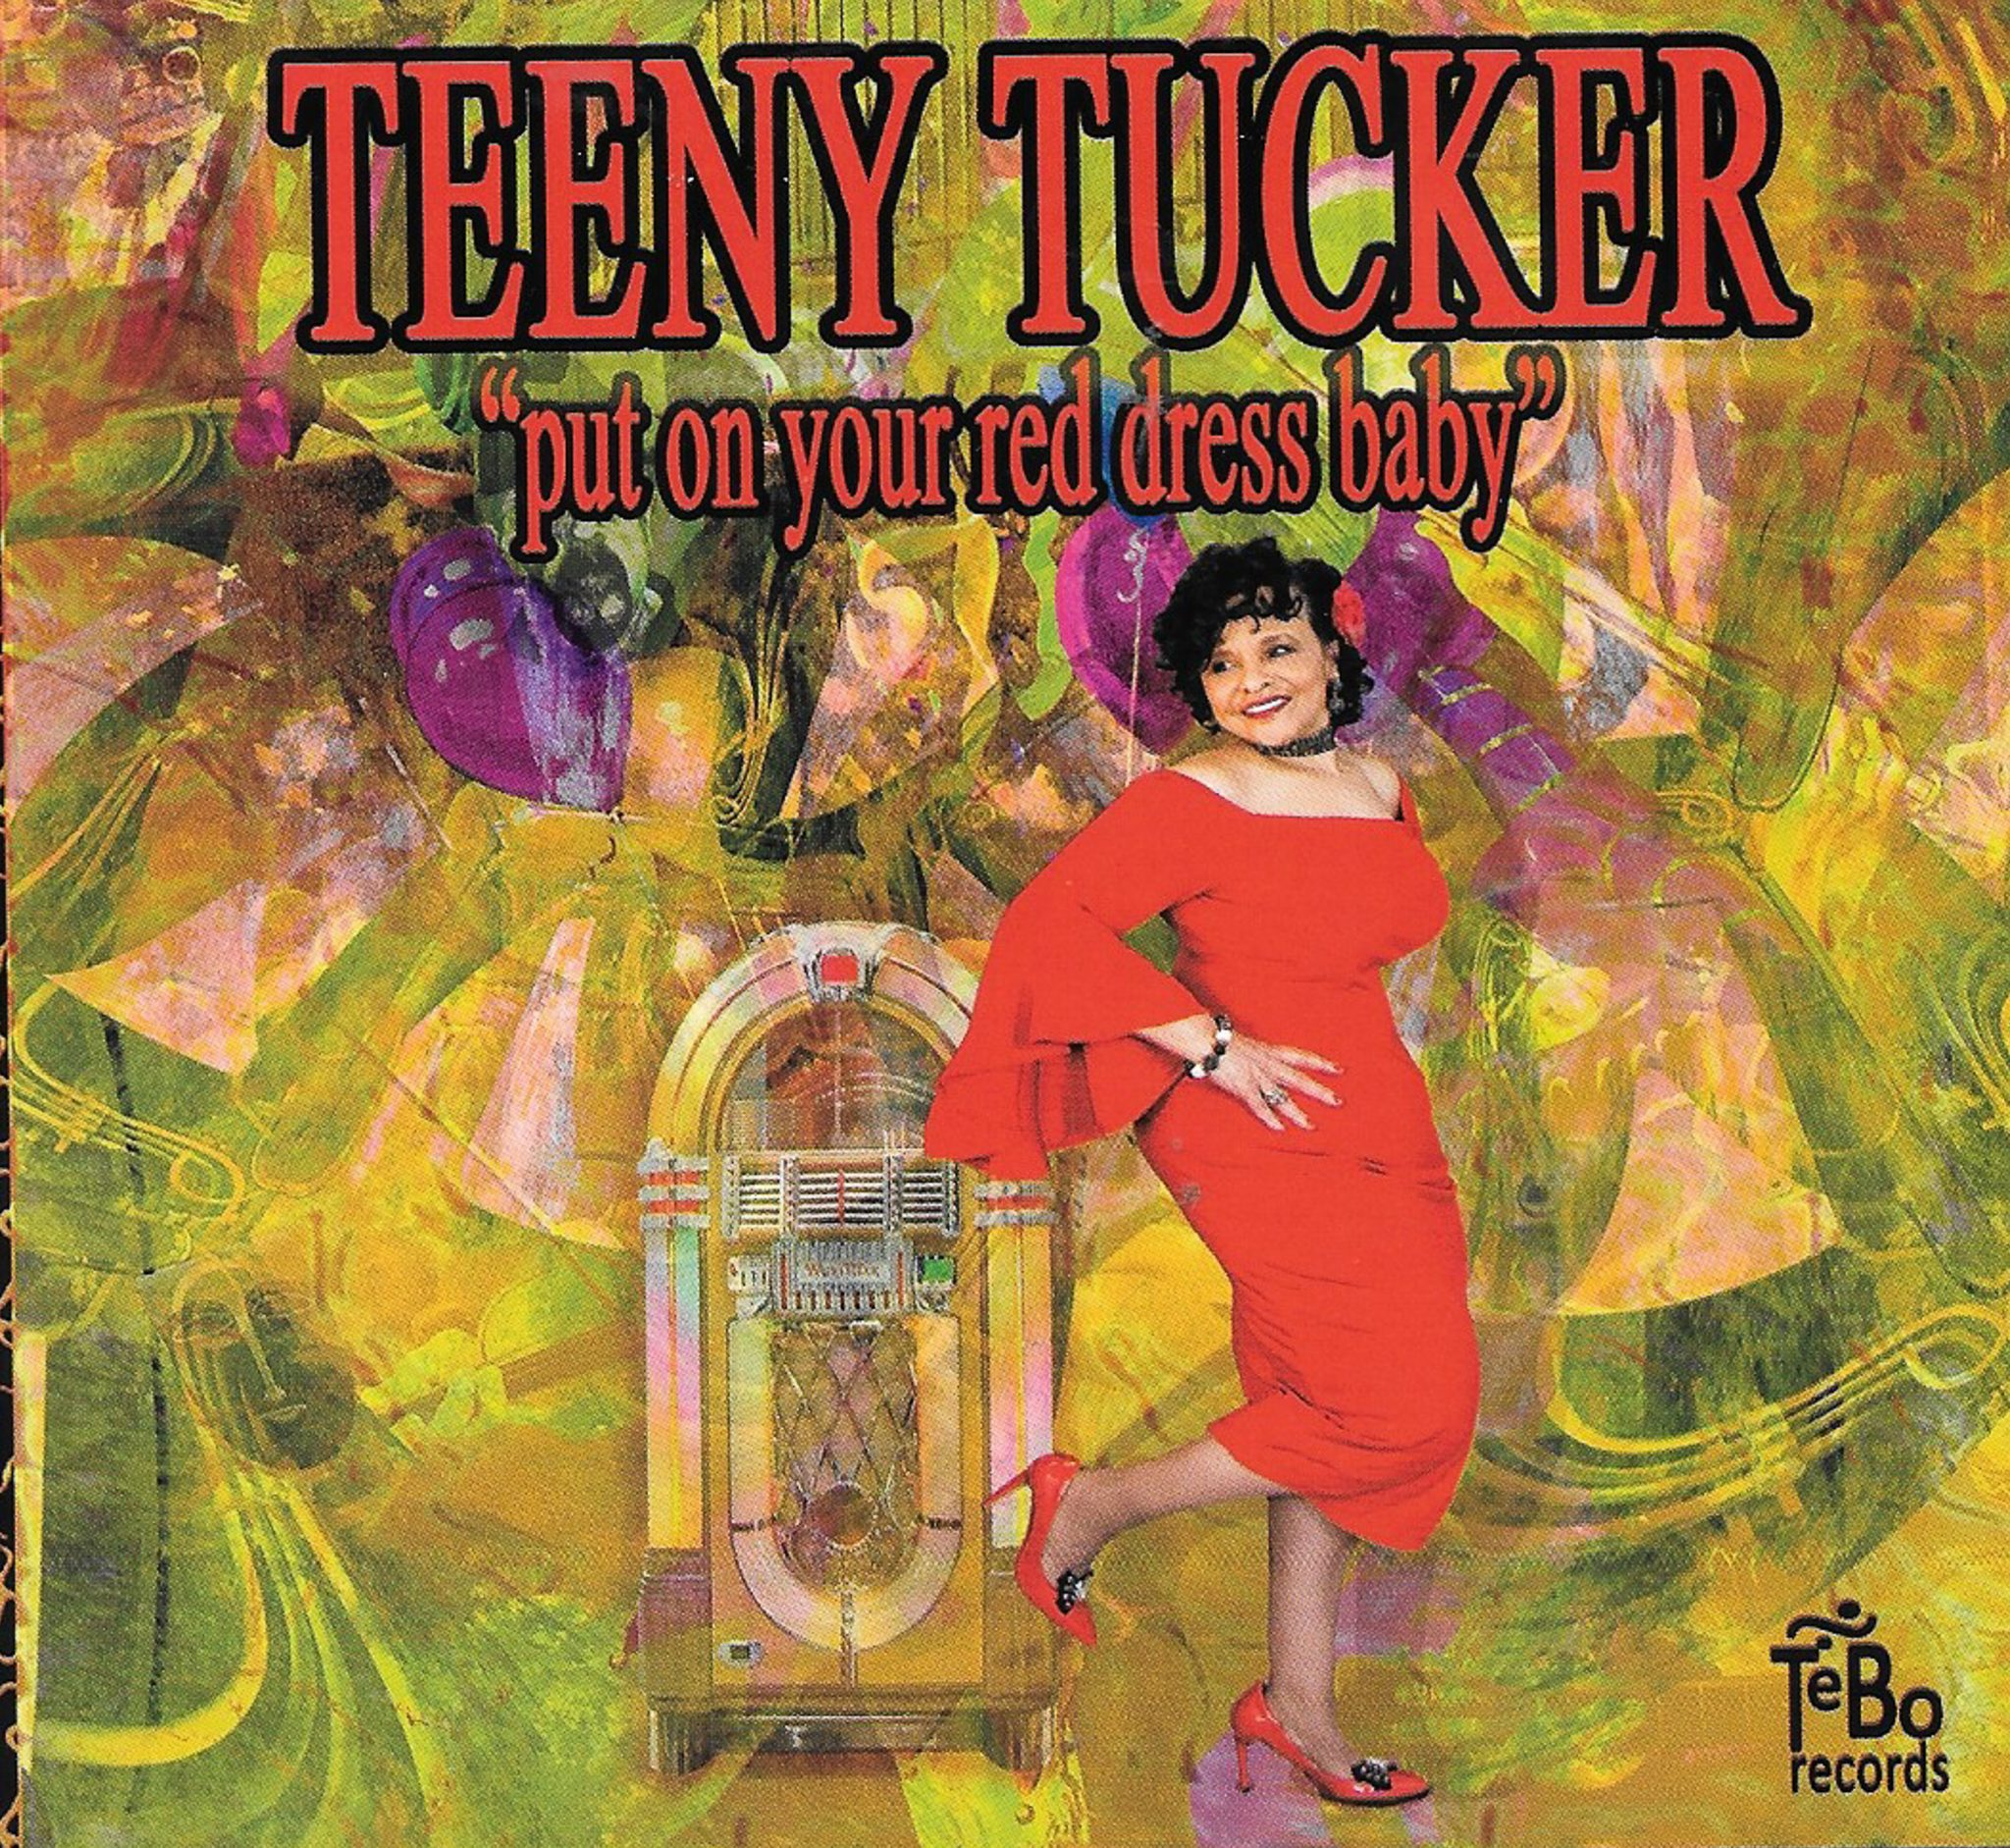 Teeny Tucker Sings Put On Your Red Dress Baby